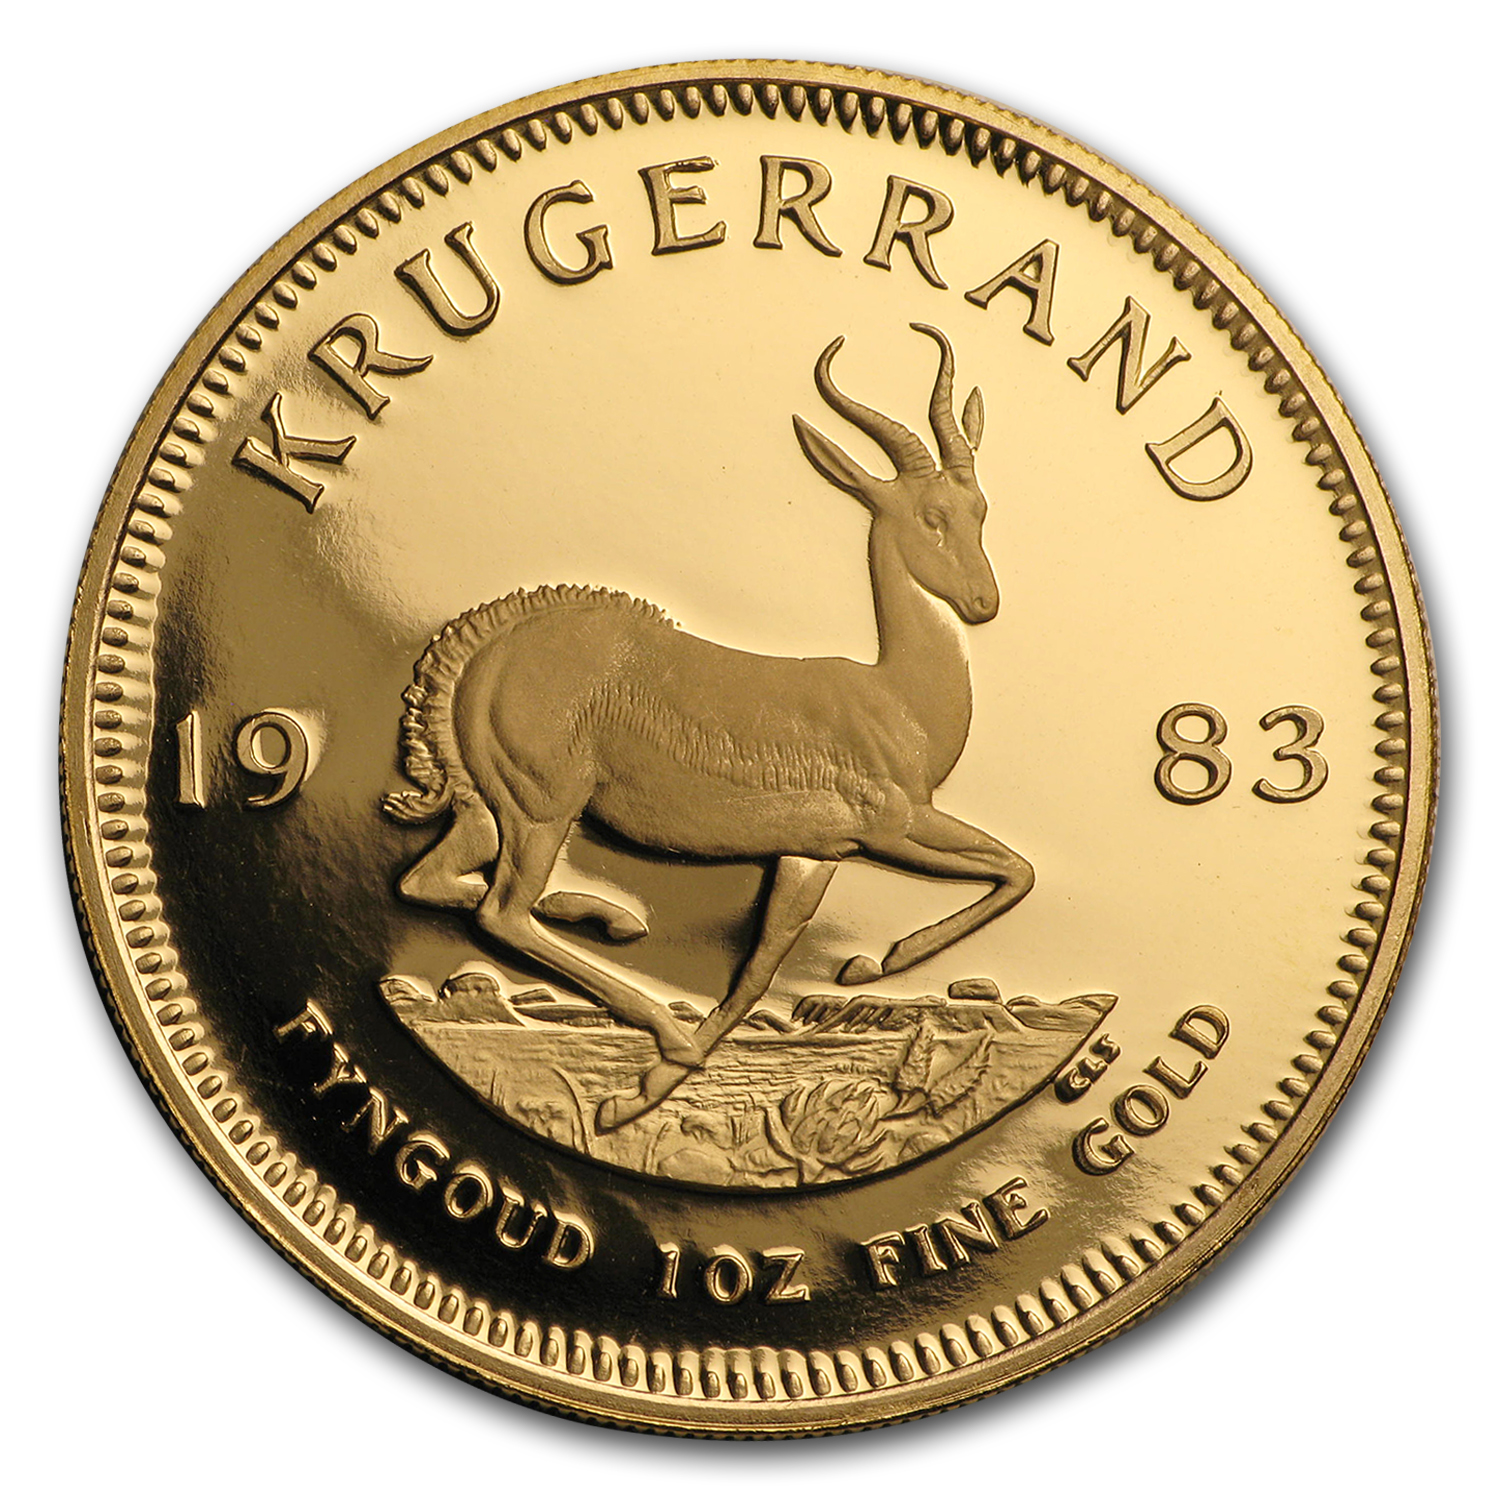 1983 South Africa 1 oz Proof Gold Krugerrand